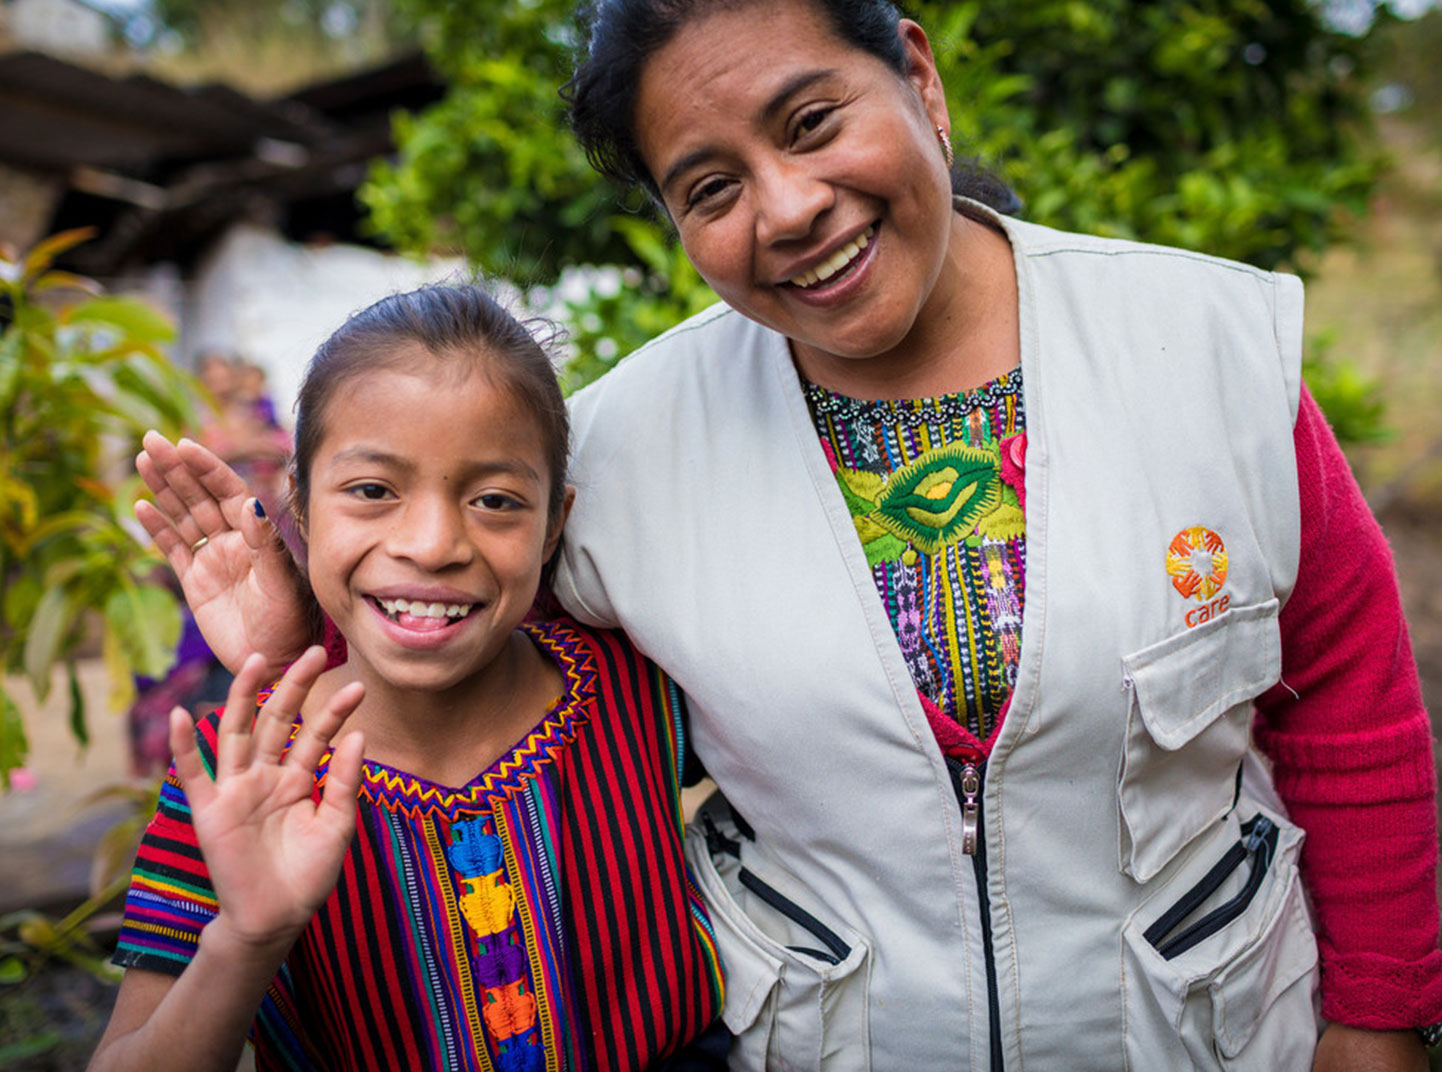 A care staffer wearing a vest stands next to a young girl wearing a brightly patterned shirt. They both smile and wave at the camera.